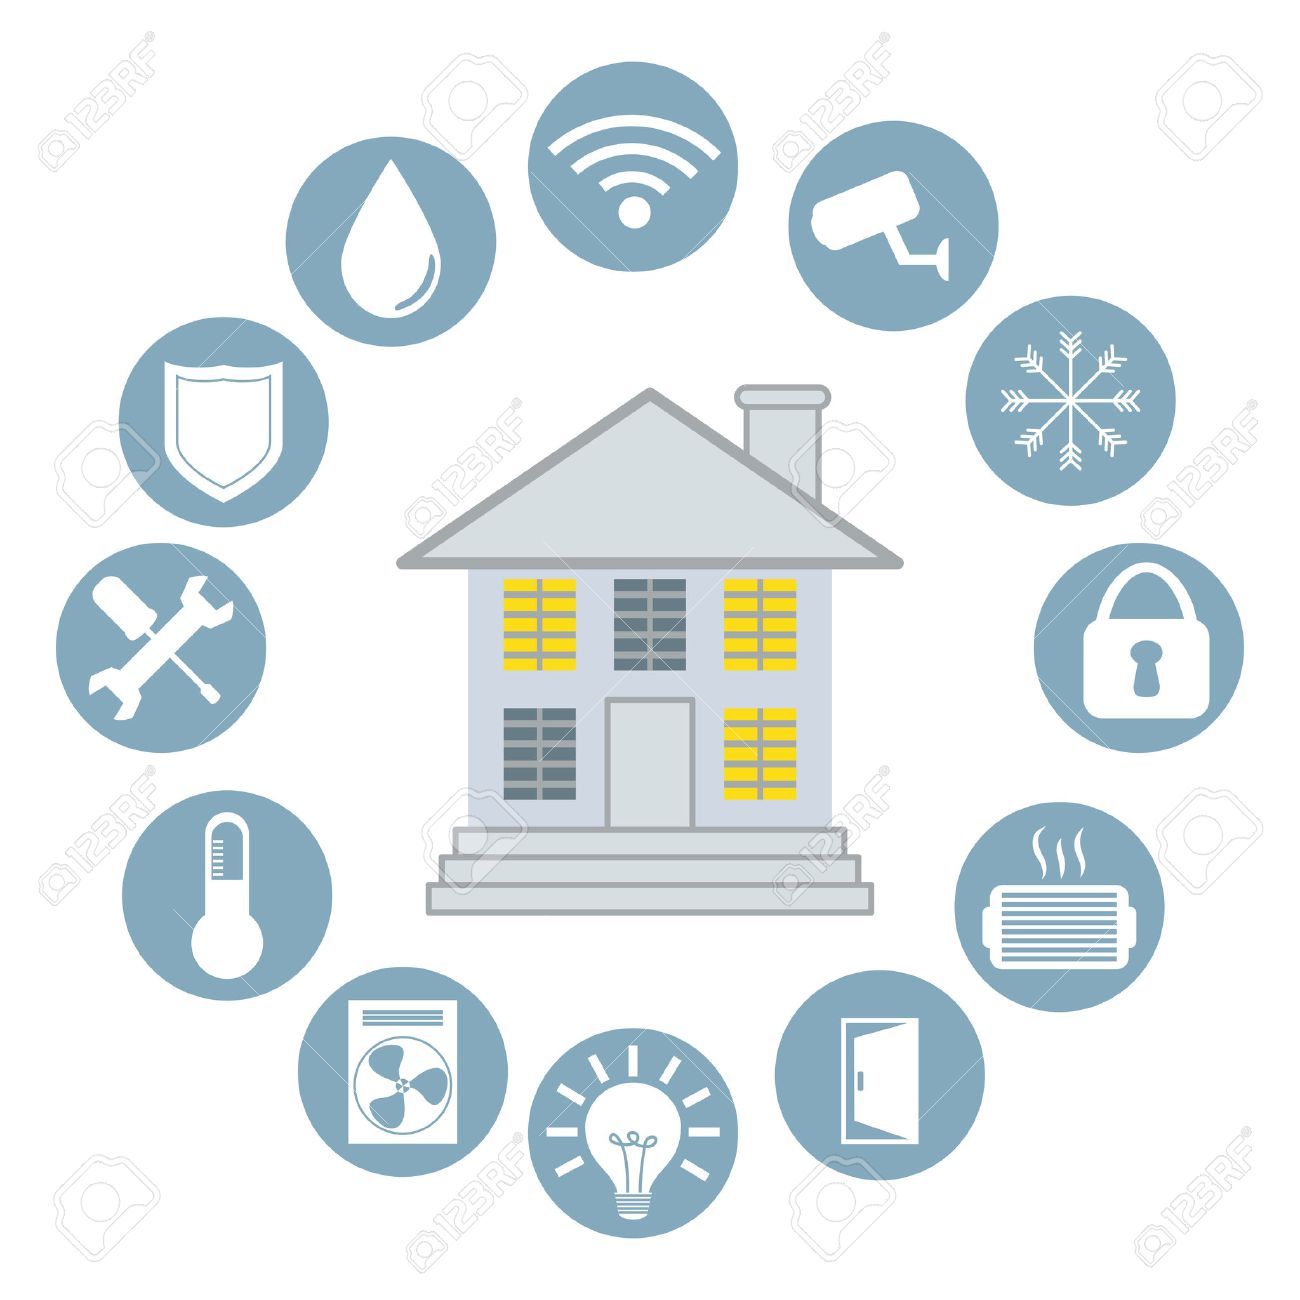 Smart Home Design, Vector Illustration Eps10 Graphic Stock Vector   36825879